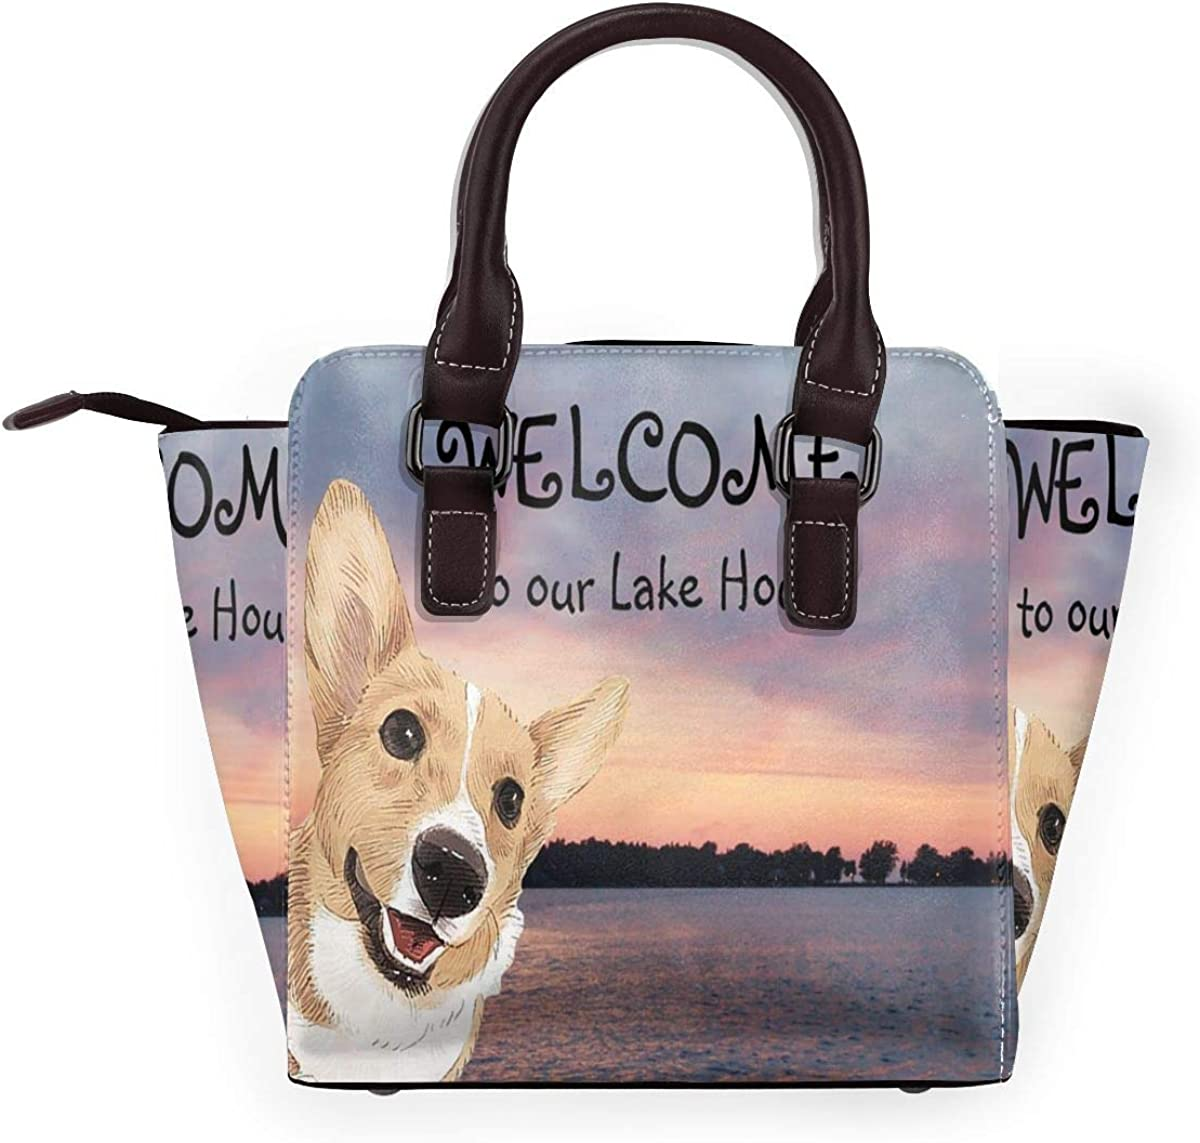 Tote Bag Welcome To Our Lake House Dog Shoulder Bag 3d Printed Non-Fading Handbags WomenS Waterproof Handle Bag Durable Multi-Functional Crossbody Travel Bag With Strap Zipper